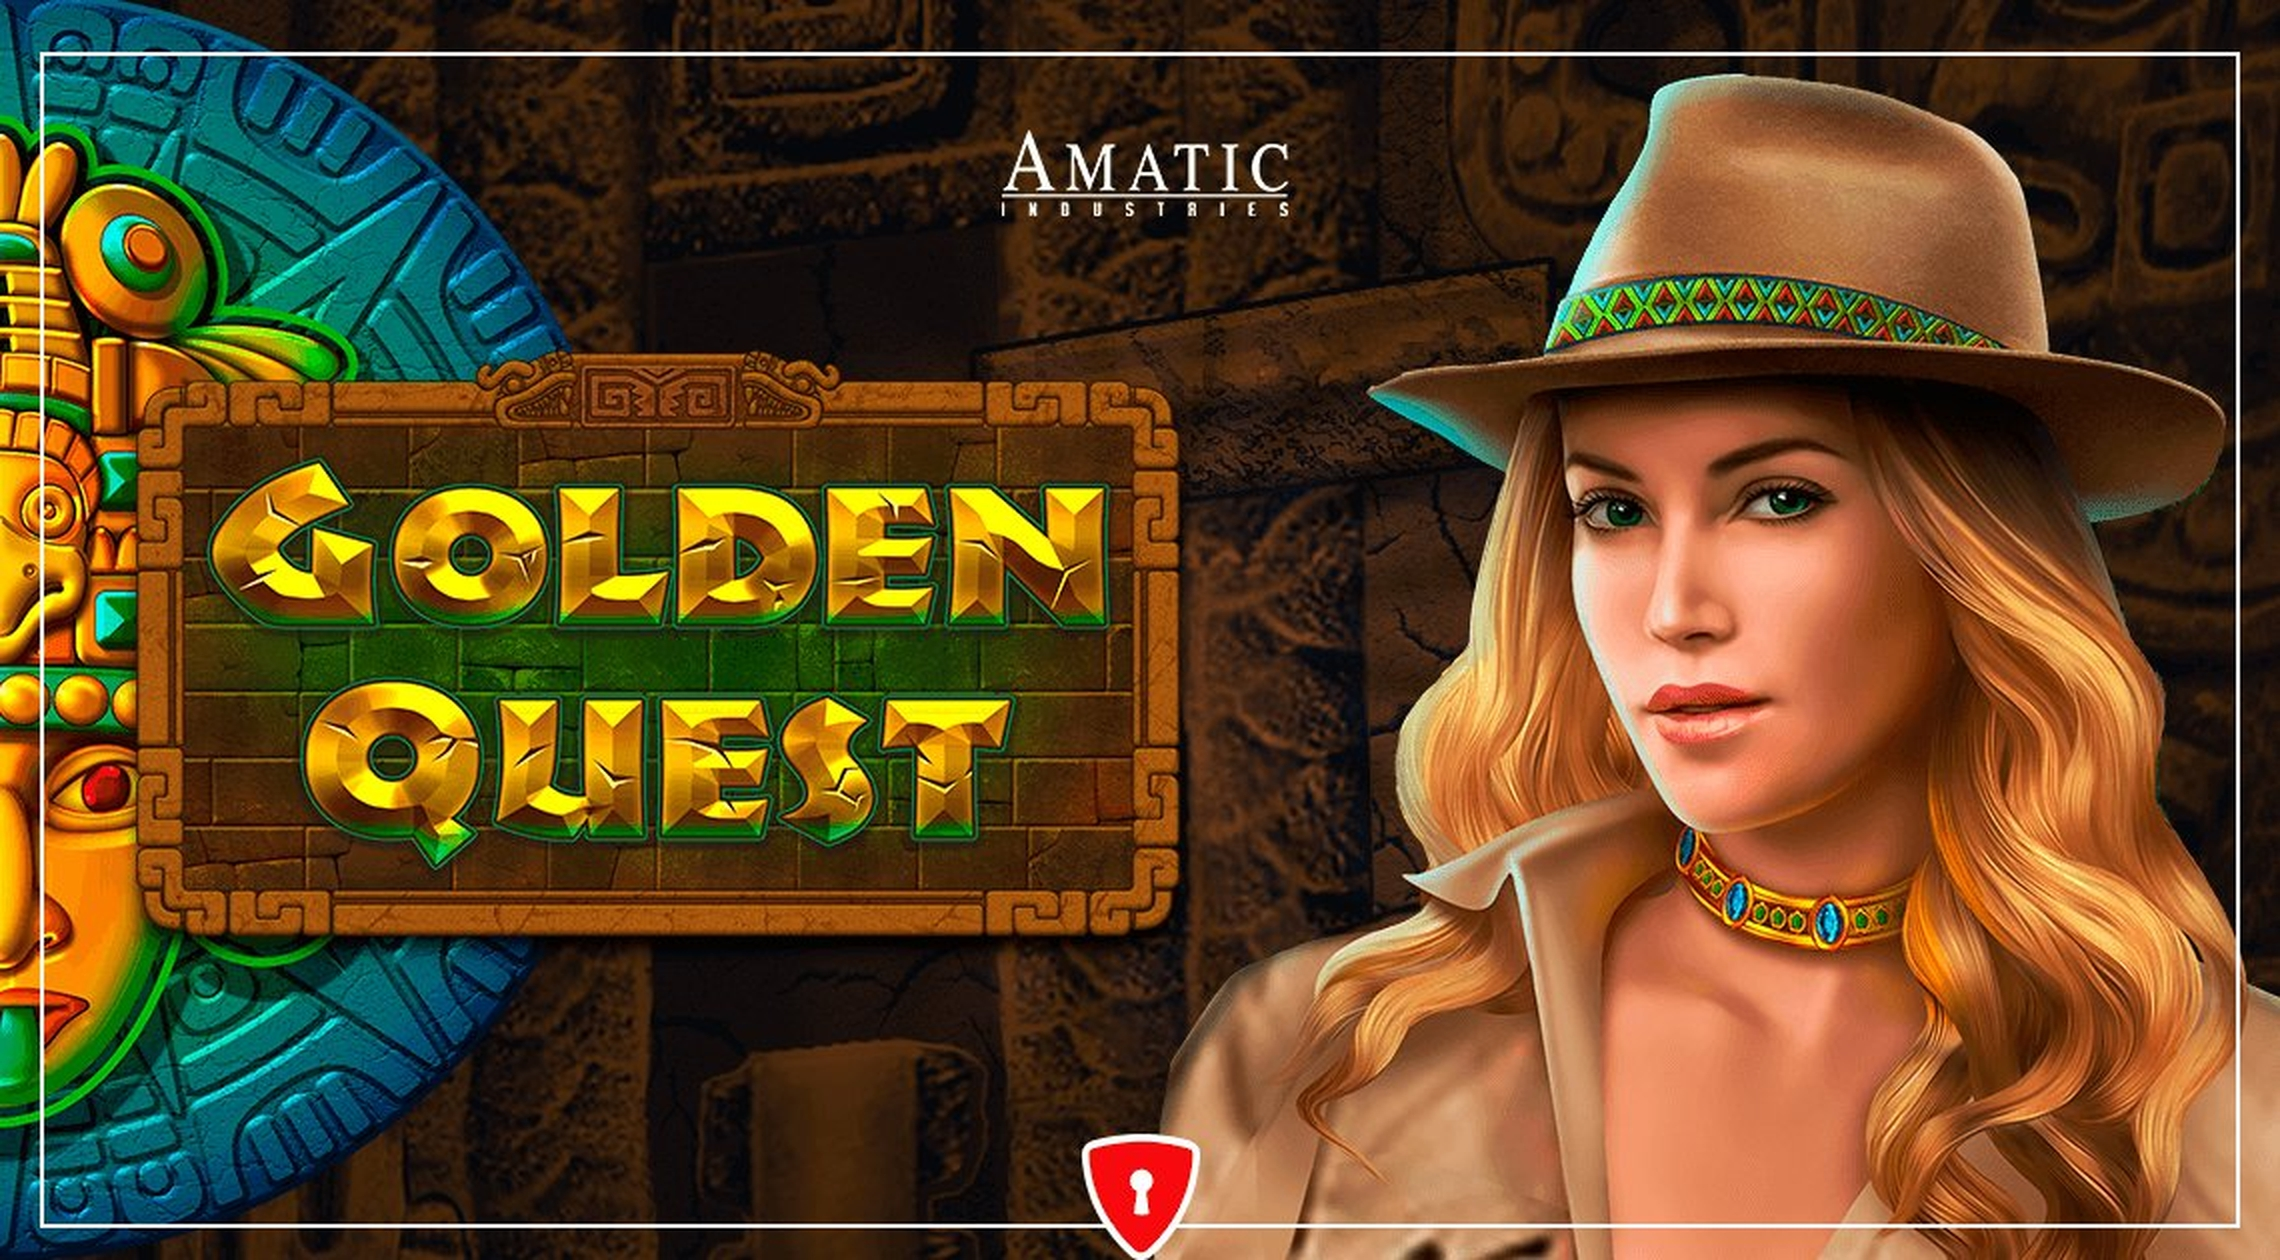 The Golden Quest Online Slot Demo Game by Amatic Industries